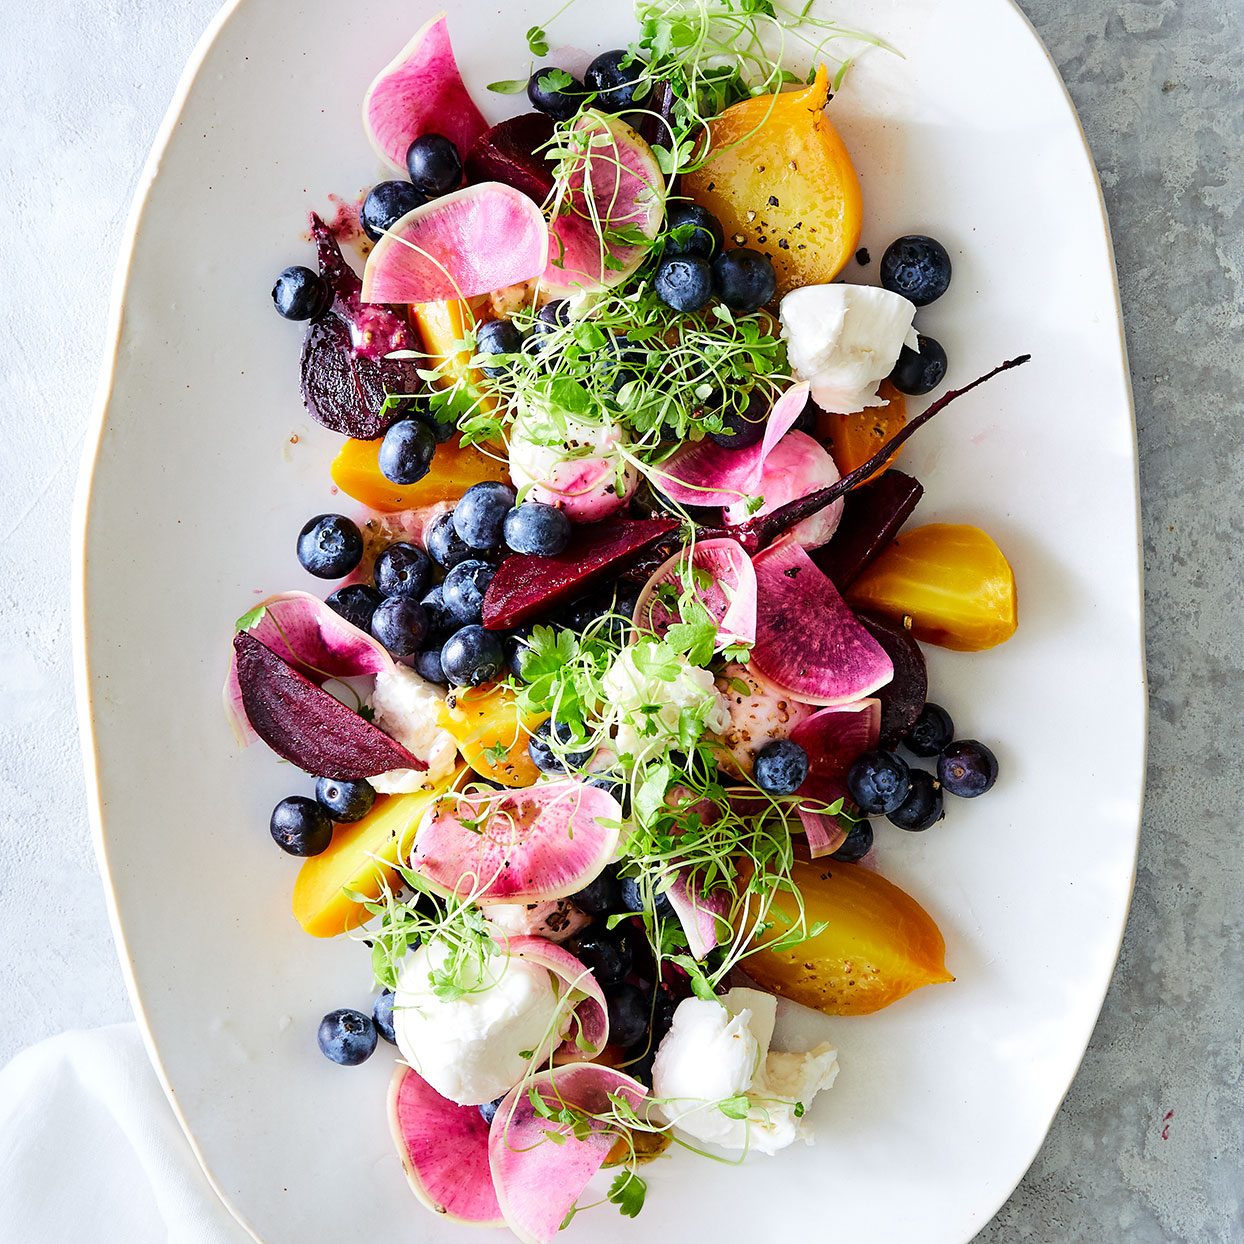 Chef Scott Graden of New Scenic Café outside Duluth, Minnesota, pickles beets to use in the winter, but in summer he cooks them up fresh in preparations like this blueberry salad. Source: EatingWell Magazine, June 2020